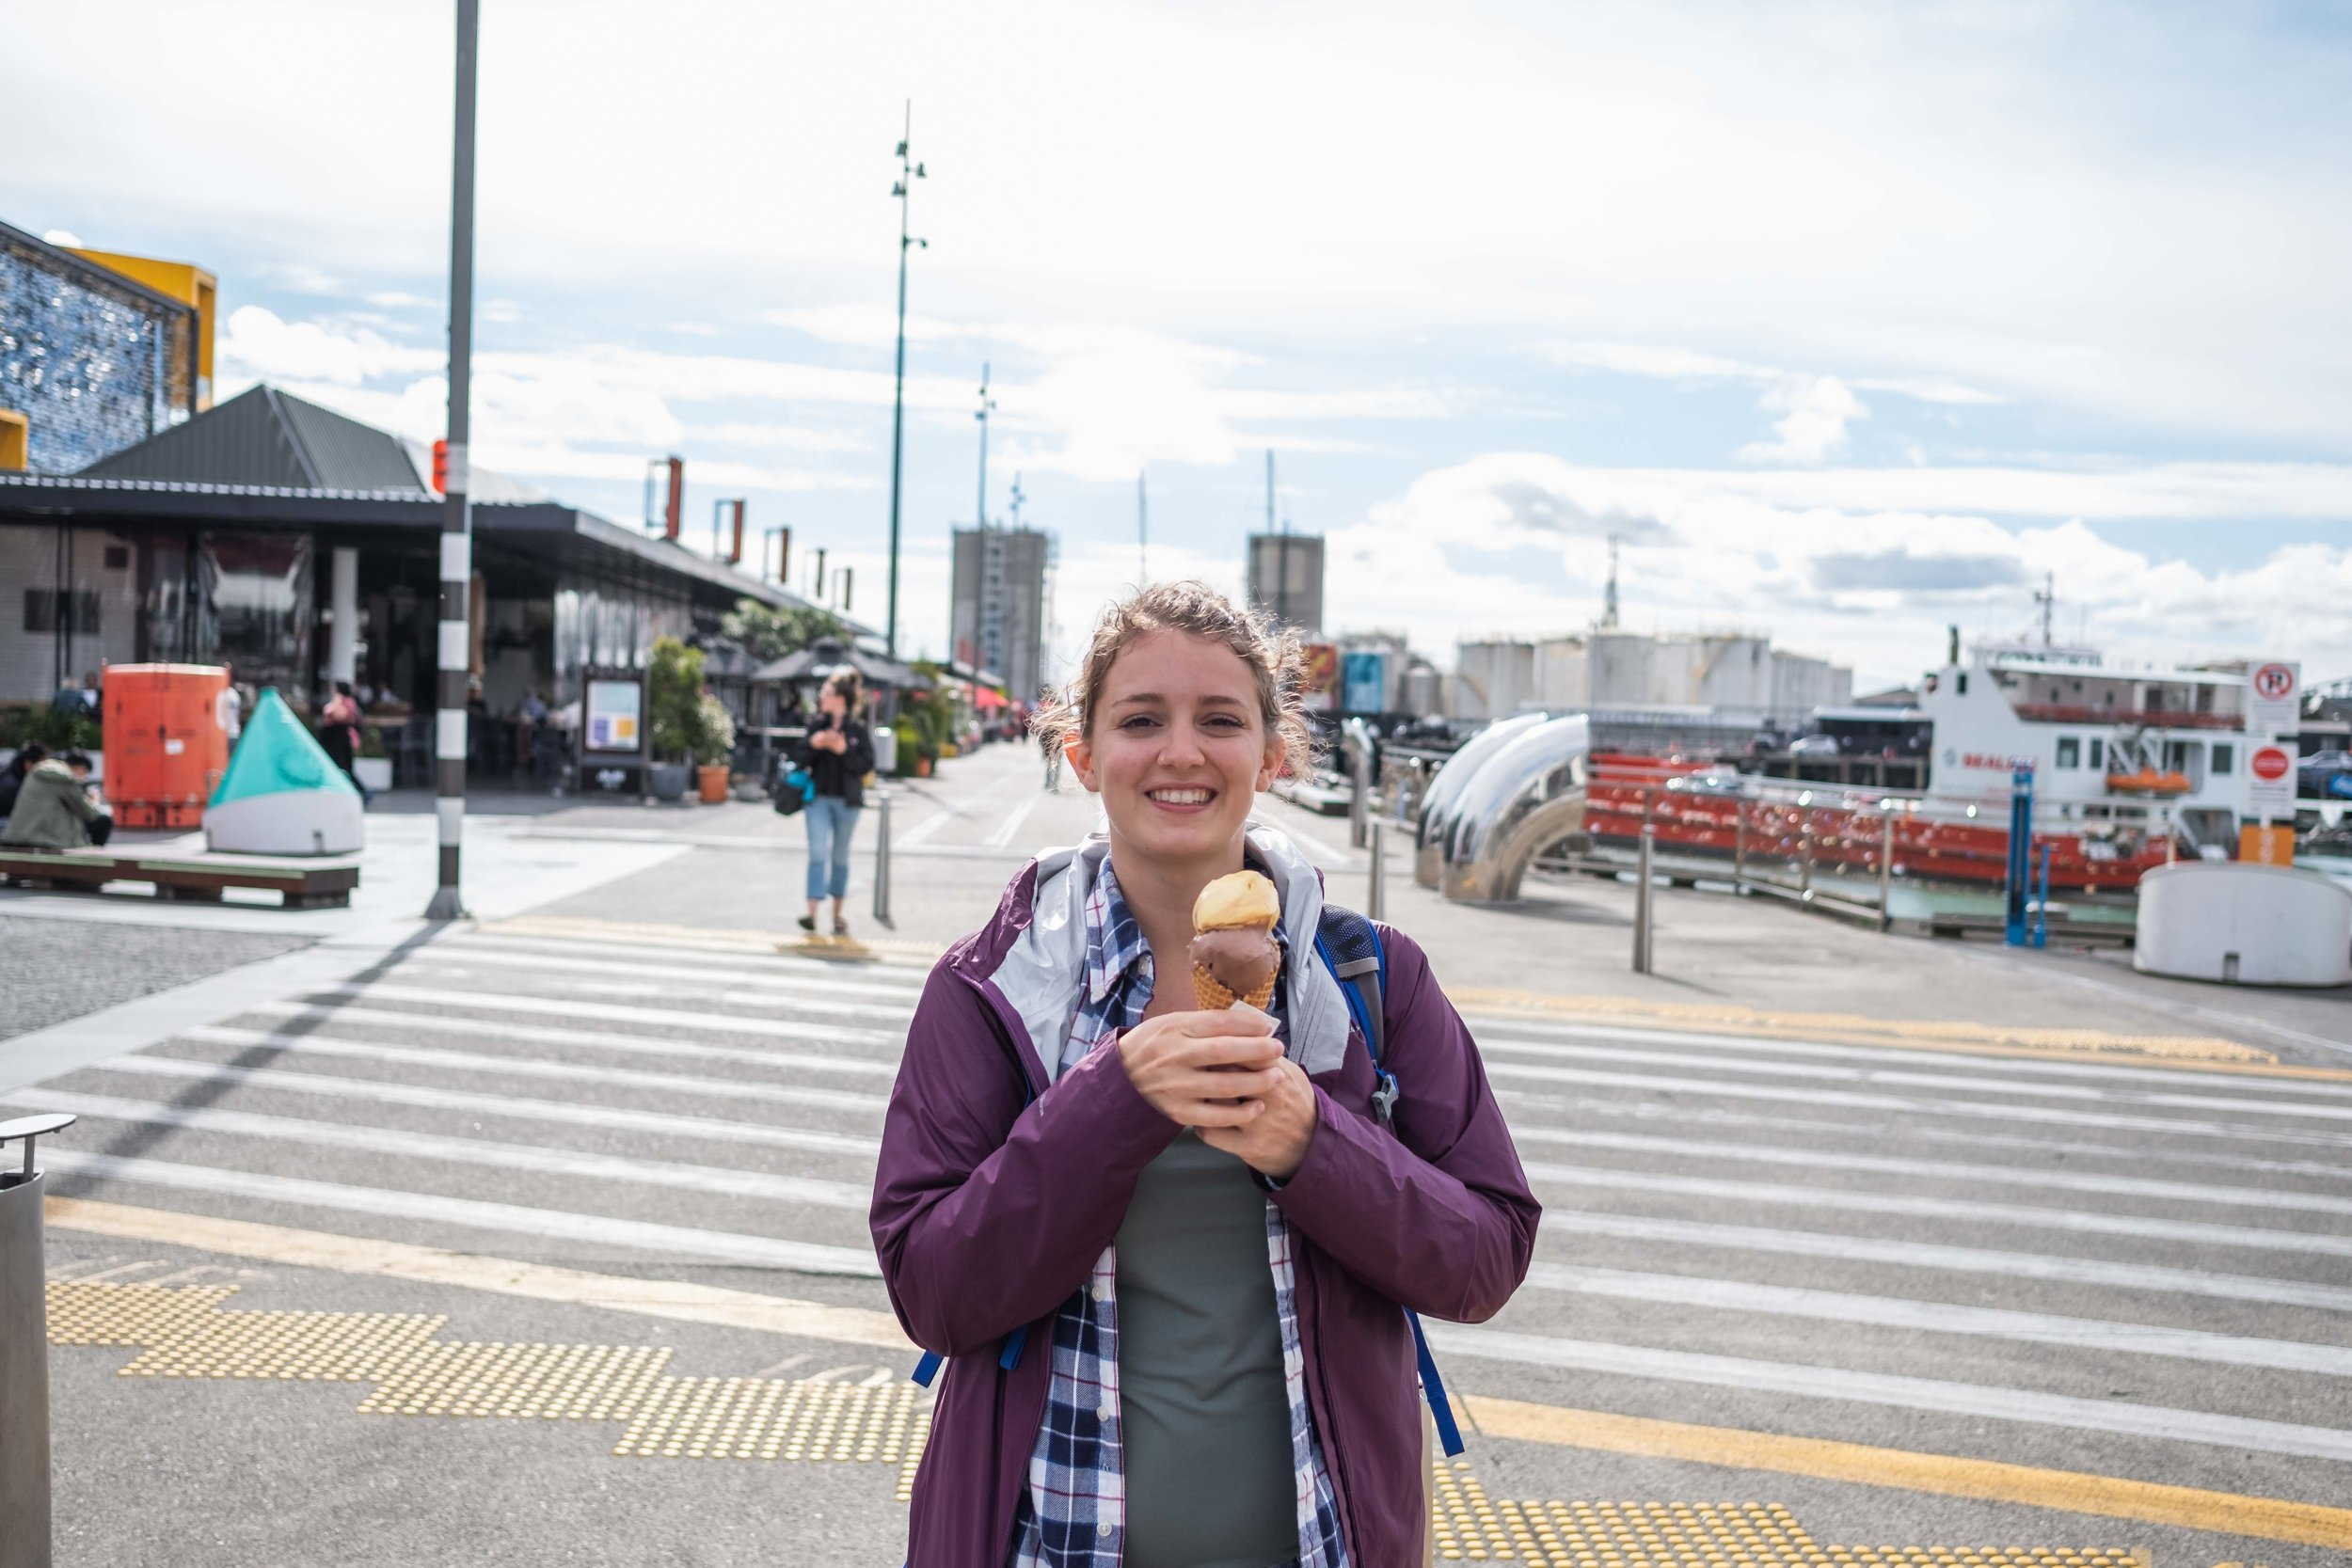 Ashley enjoying some gelato (she'd been talking about eating ice cream nonstop for like three days)